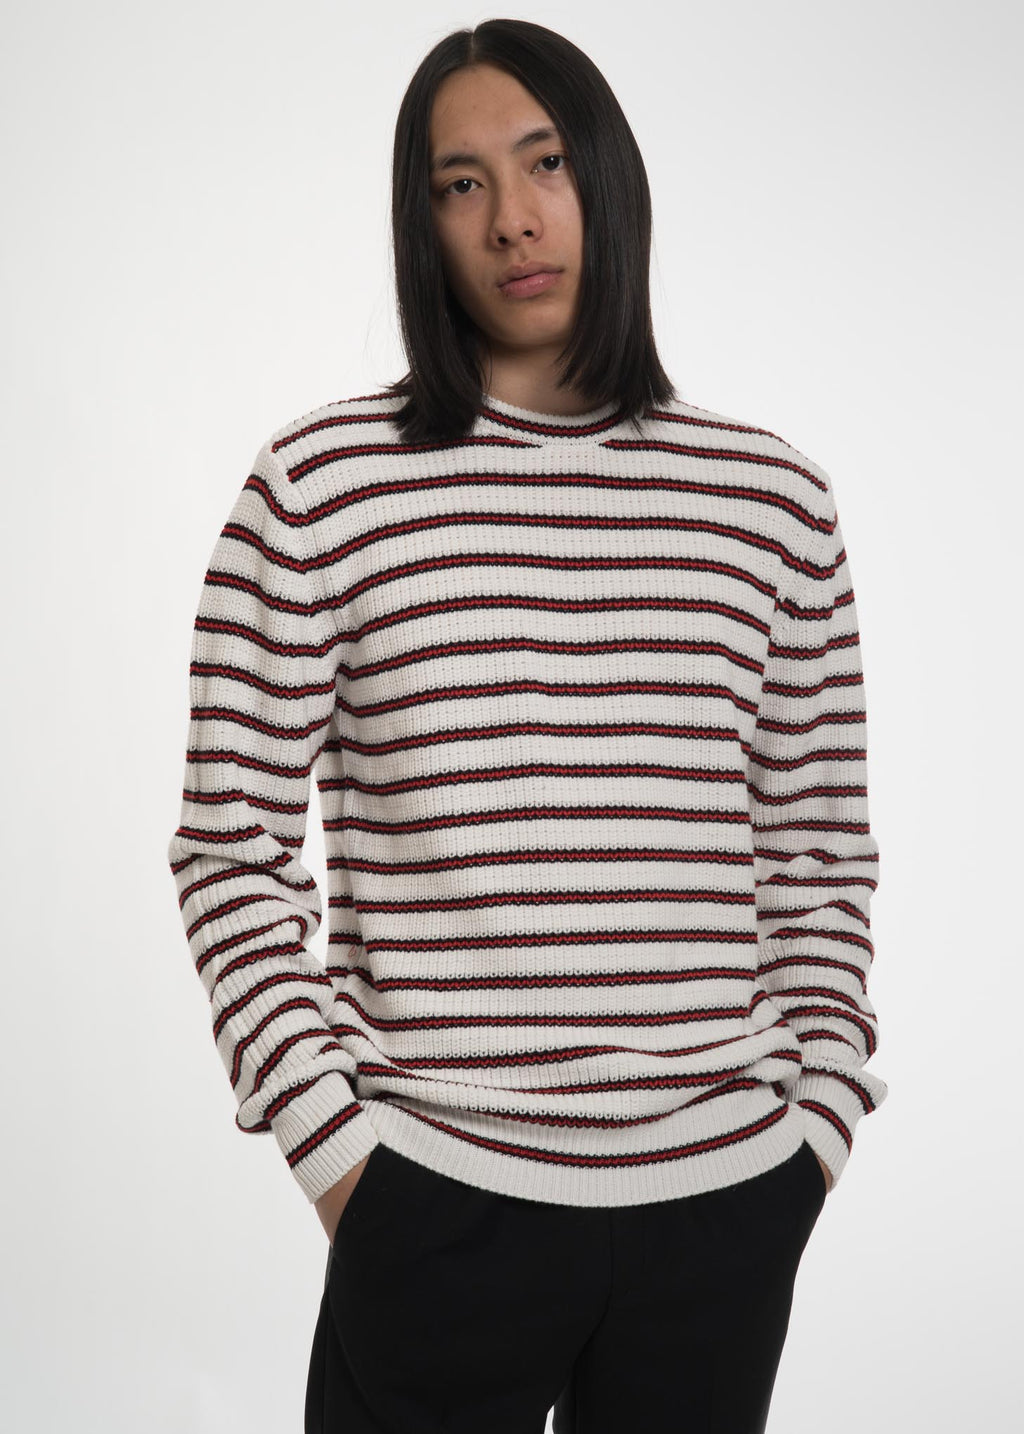 Ecru Striped Warrick Knit Sweater